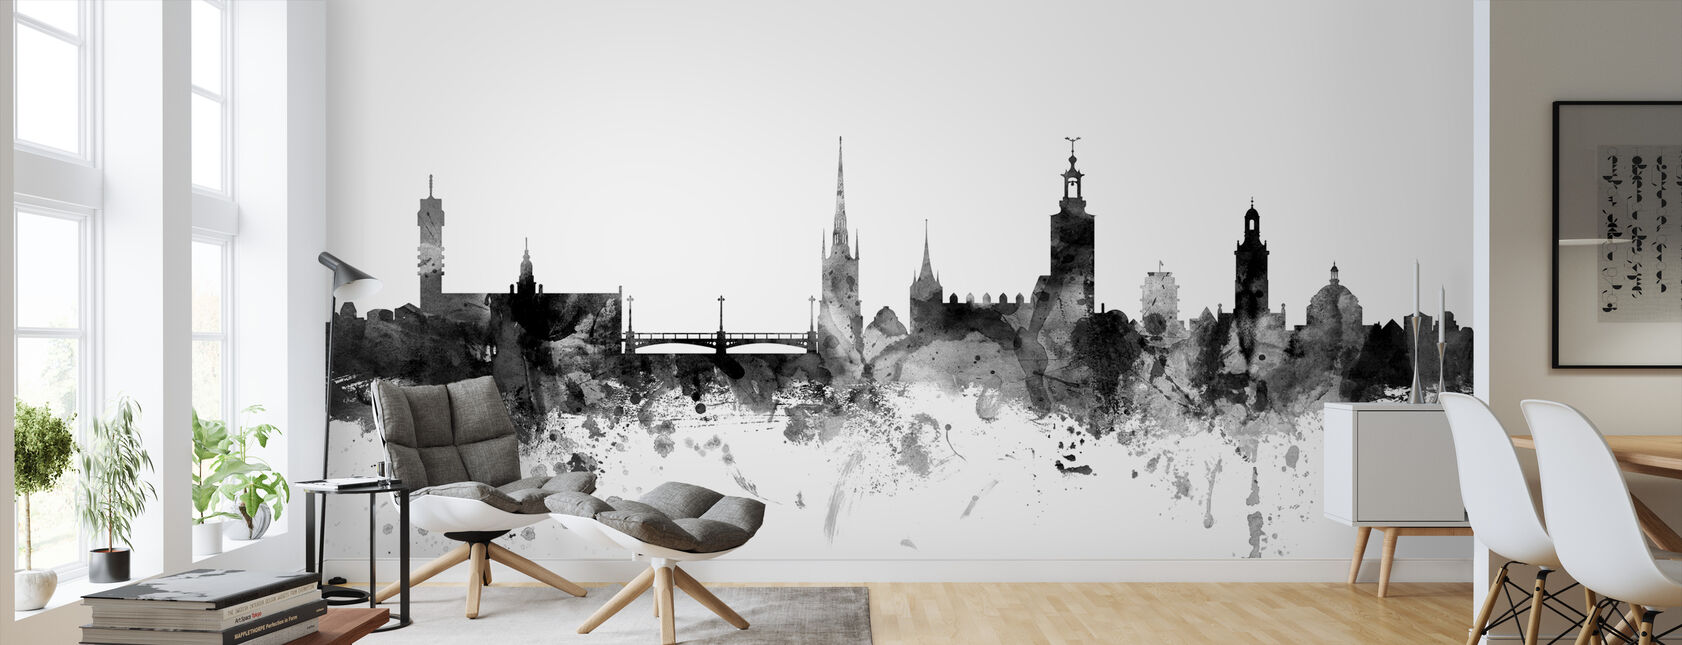 Stockholm Skyline Black - Wallpaper - Living Room